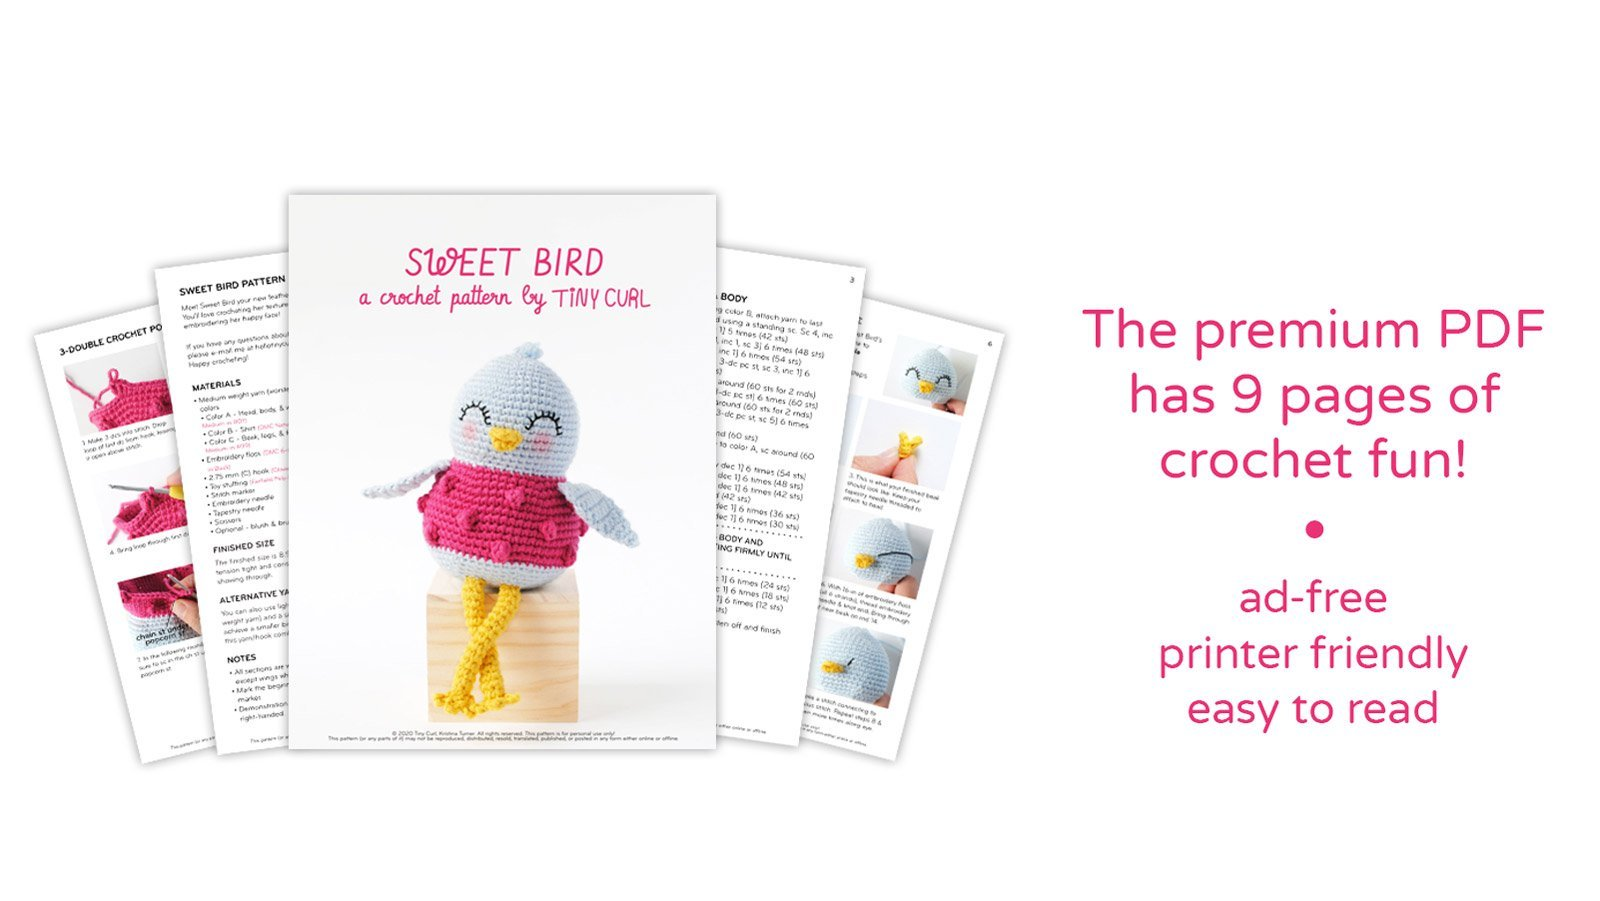 "A graphic showing 5 pages of the premium PDF for the Sweet Bird crochet pattern. It says ""The premium PDF has 9 pages of crochet fun! Ad-free, printer friendly, easy to read."""